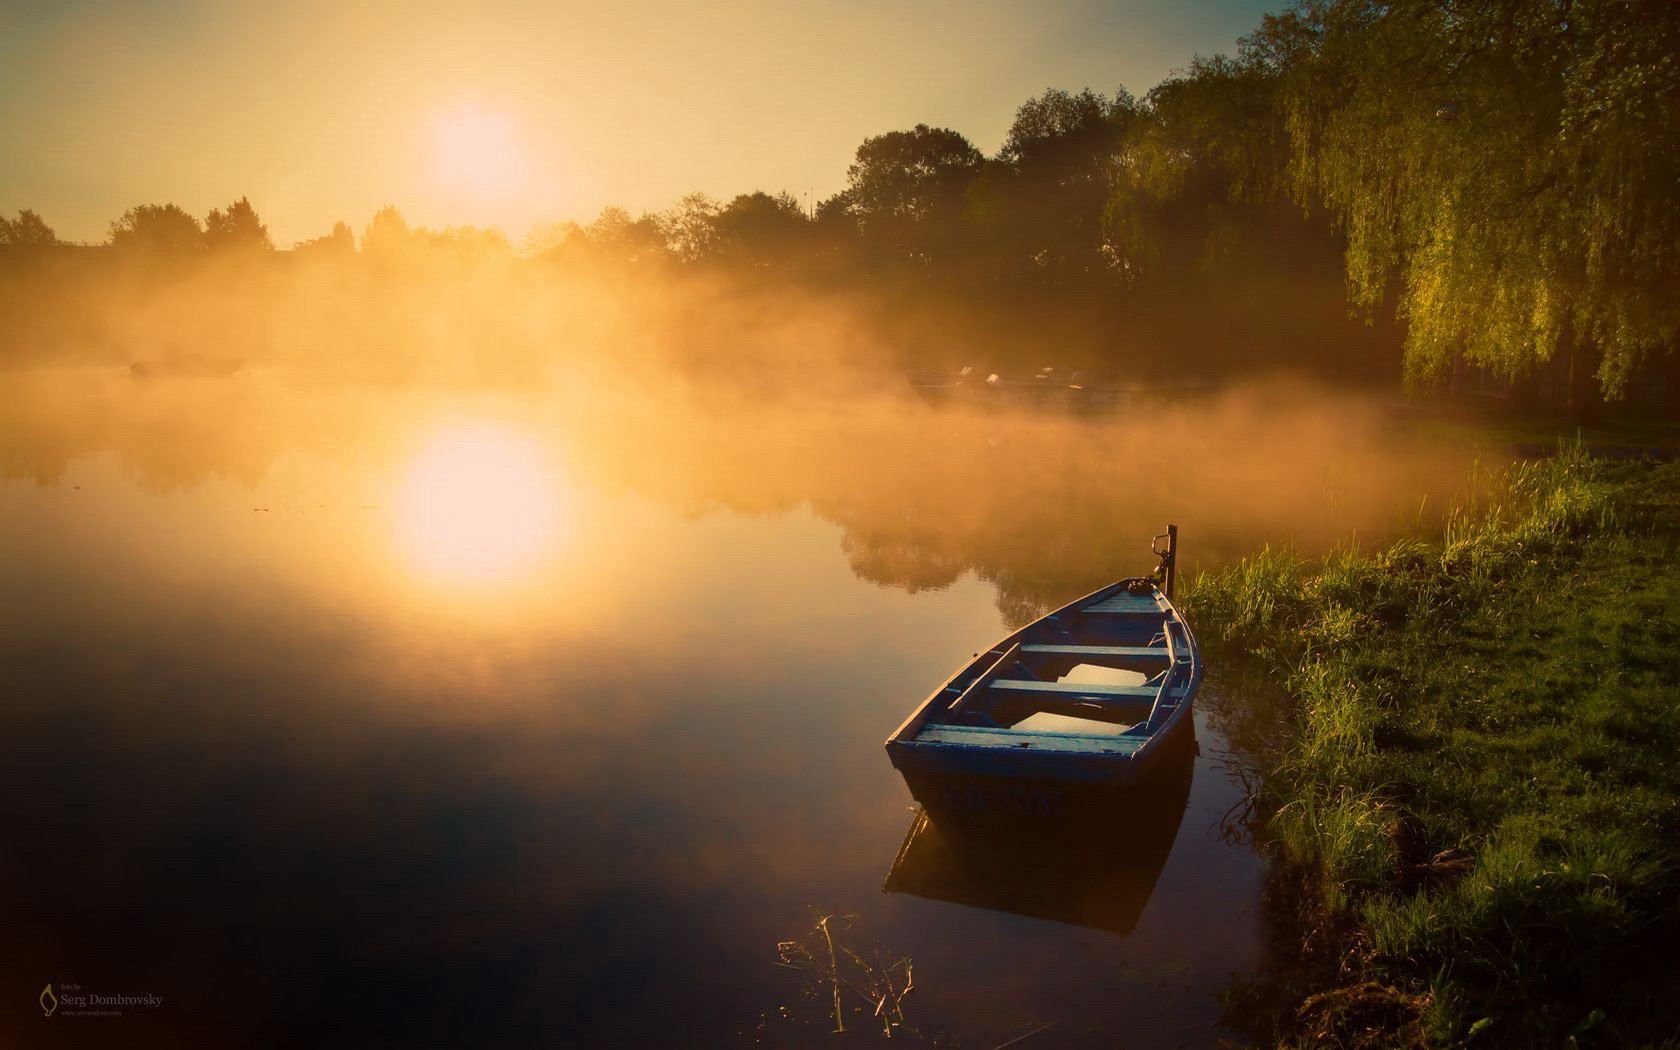 Photography Background Wallpapers: Lake Wallpaper And Background Image